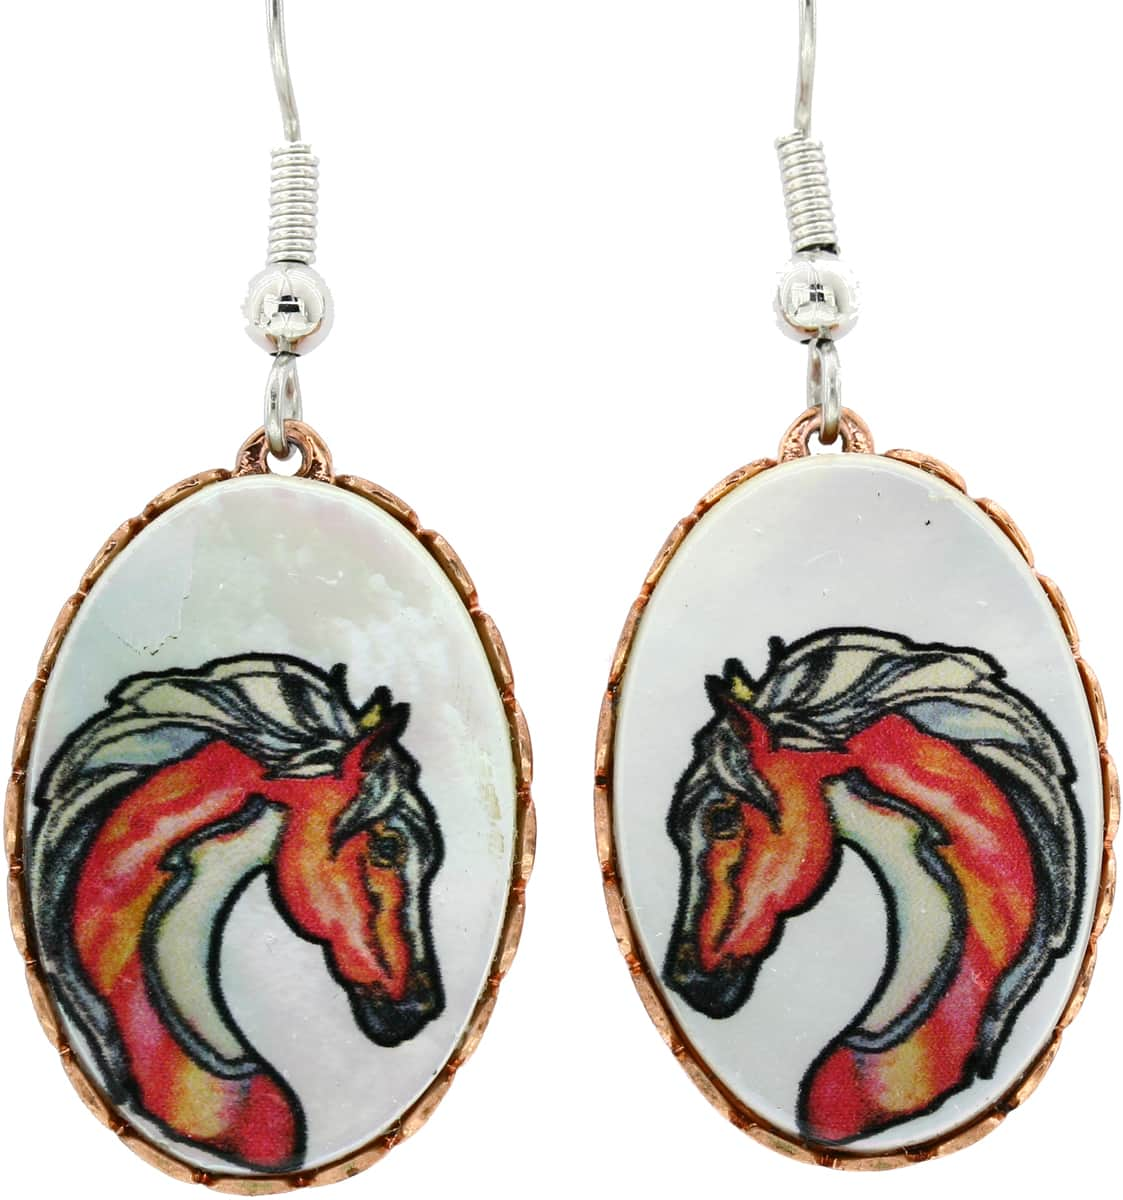 Horse Earrings Created Using Copper Bezels with Shell Inserts